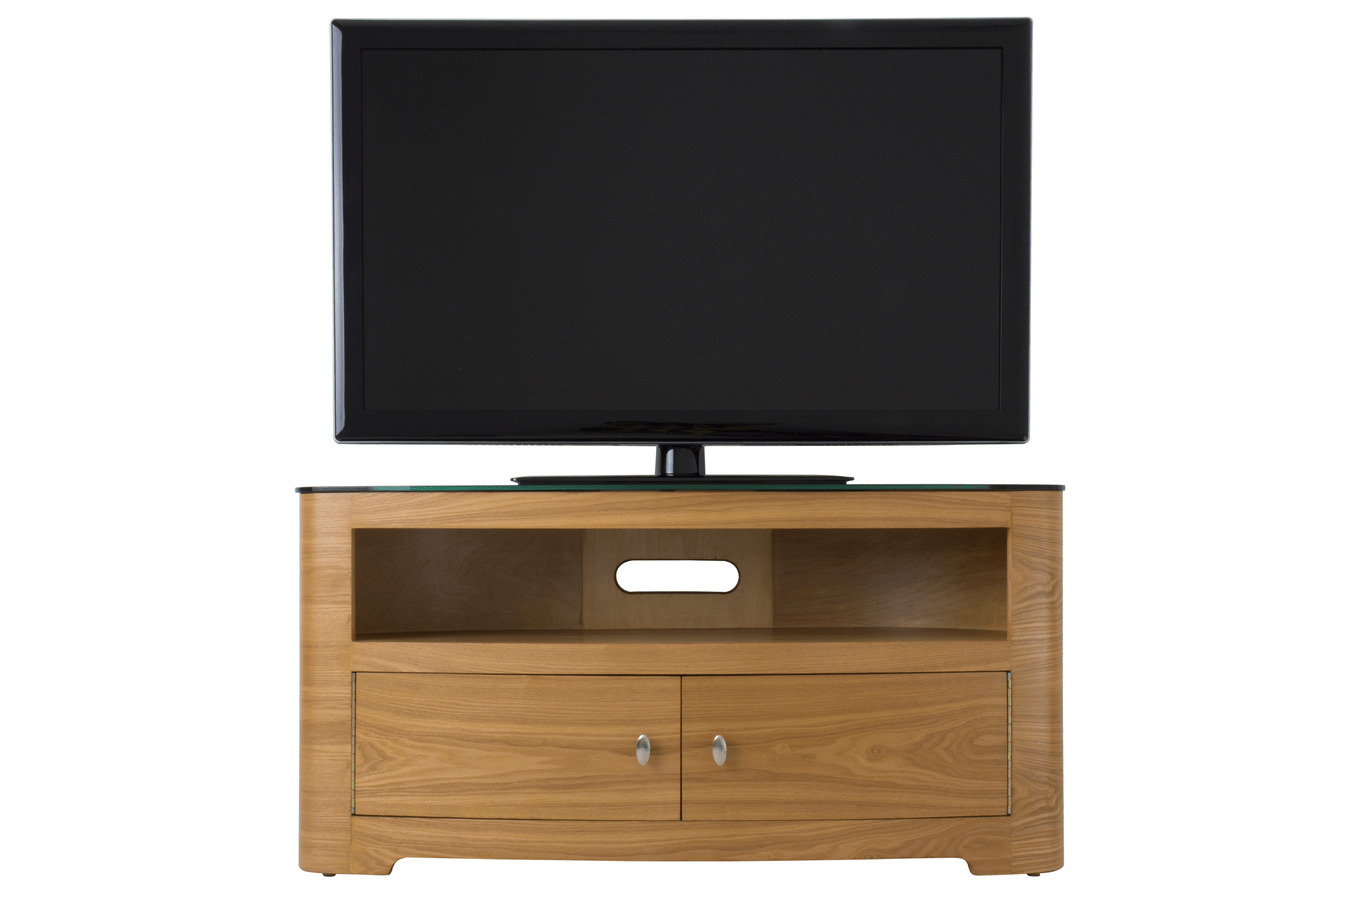 Alphason Meuble Tv Meuble Tv Darty Meuble Tv Avf Sdc 600 32 Sdc600 3692183